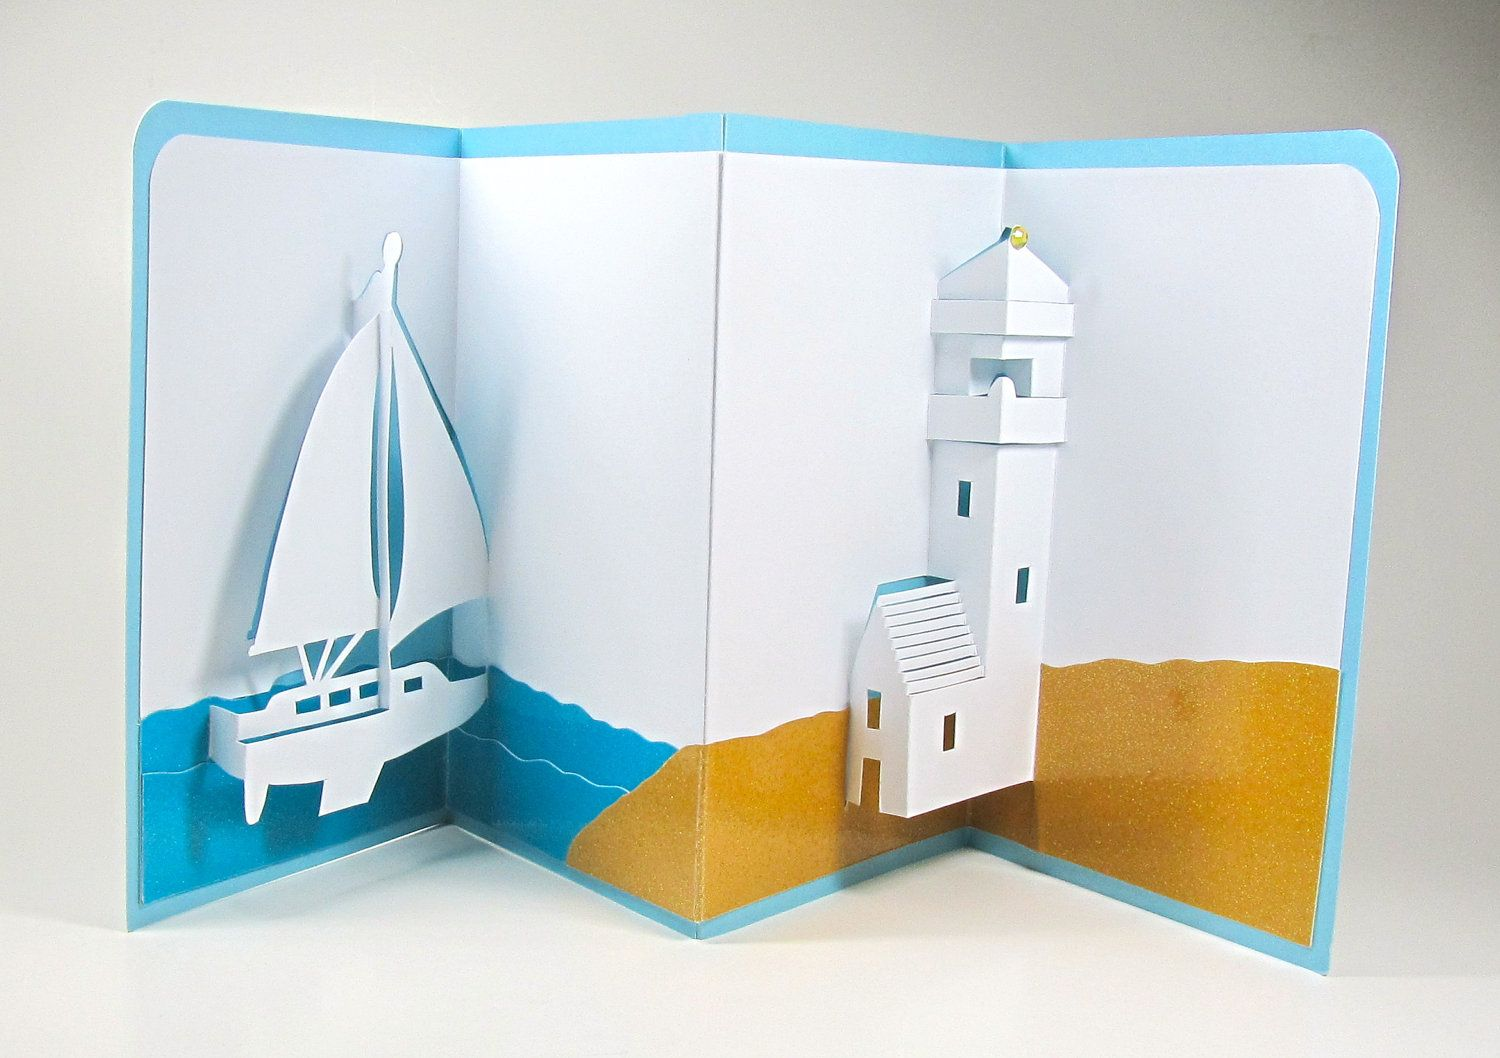 Sailboat and lighthouse nautical pop up 3d card home dcor origamic sailboat and lighthouse nautical pop up 3d card home dcor origamic architecture handmade in white kristyandbryce Choice Image